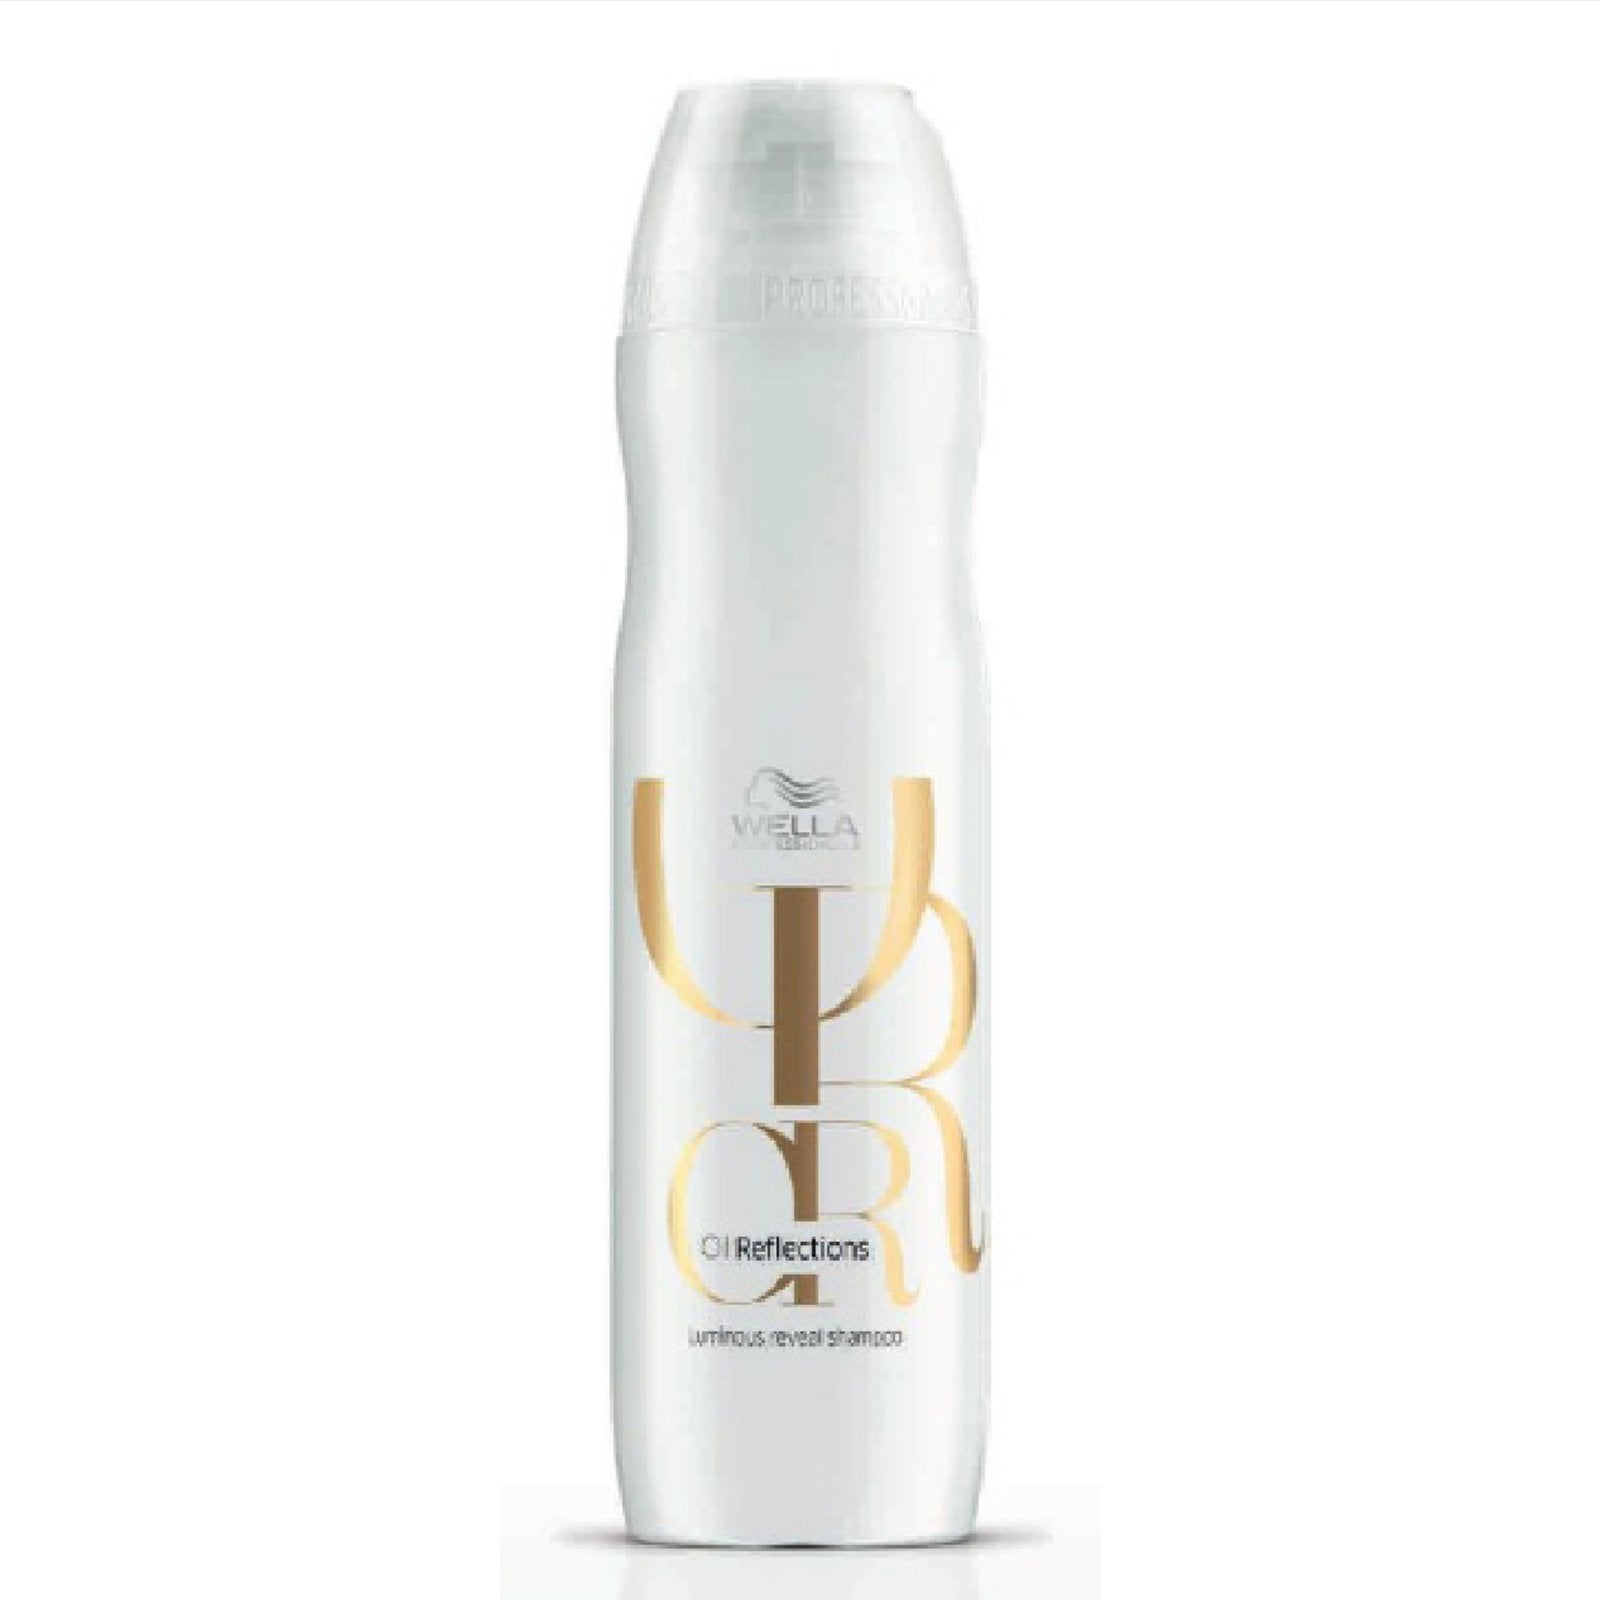 Wella Oil Reflections Shampoo 250ml